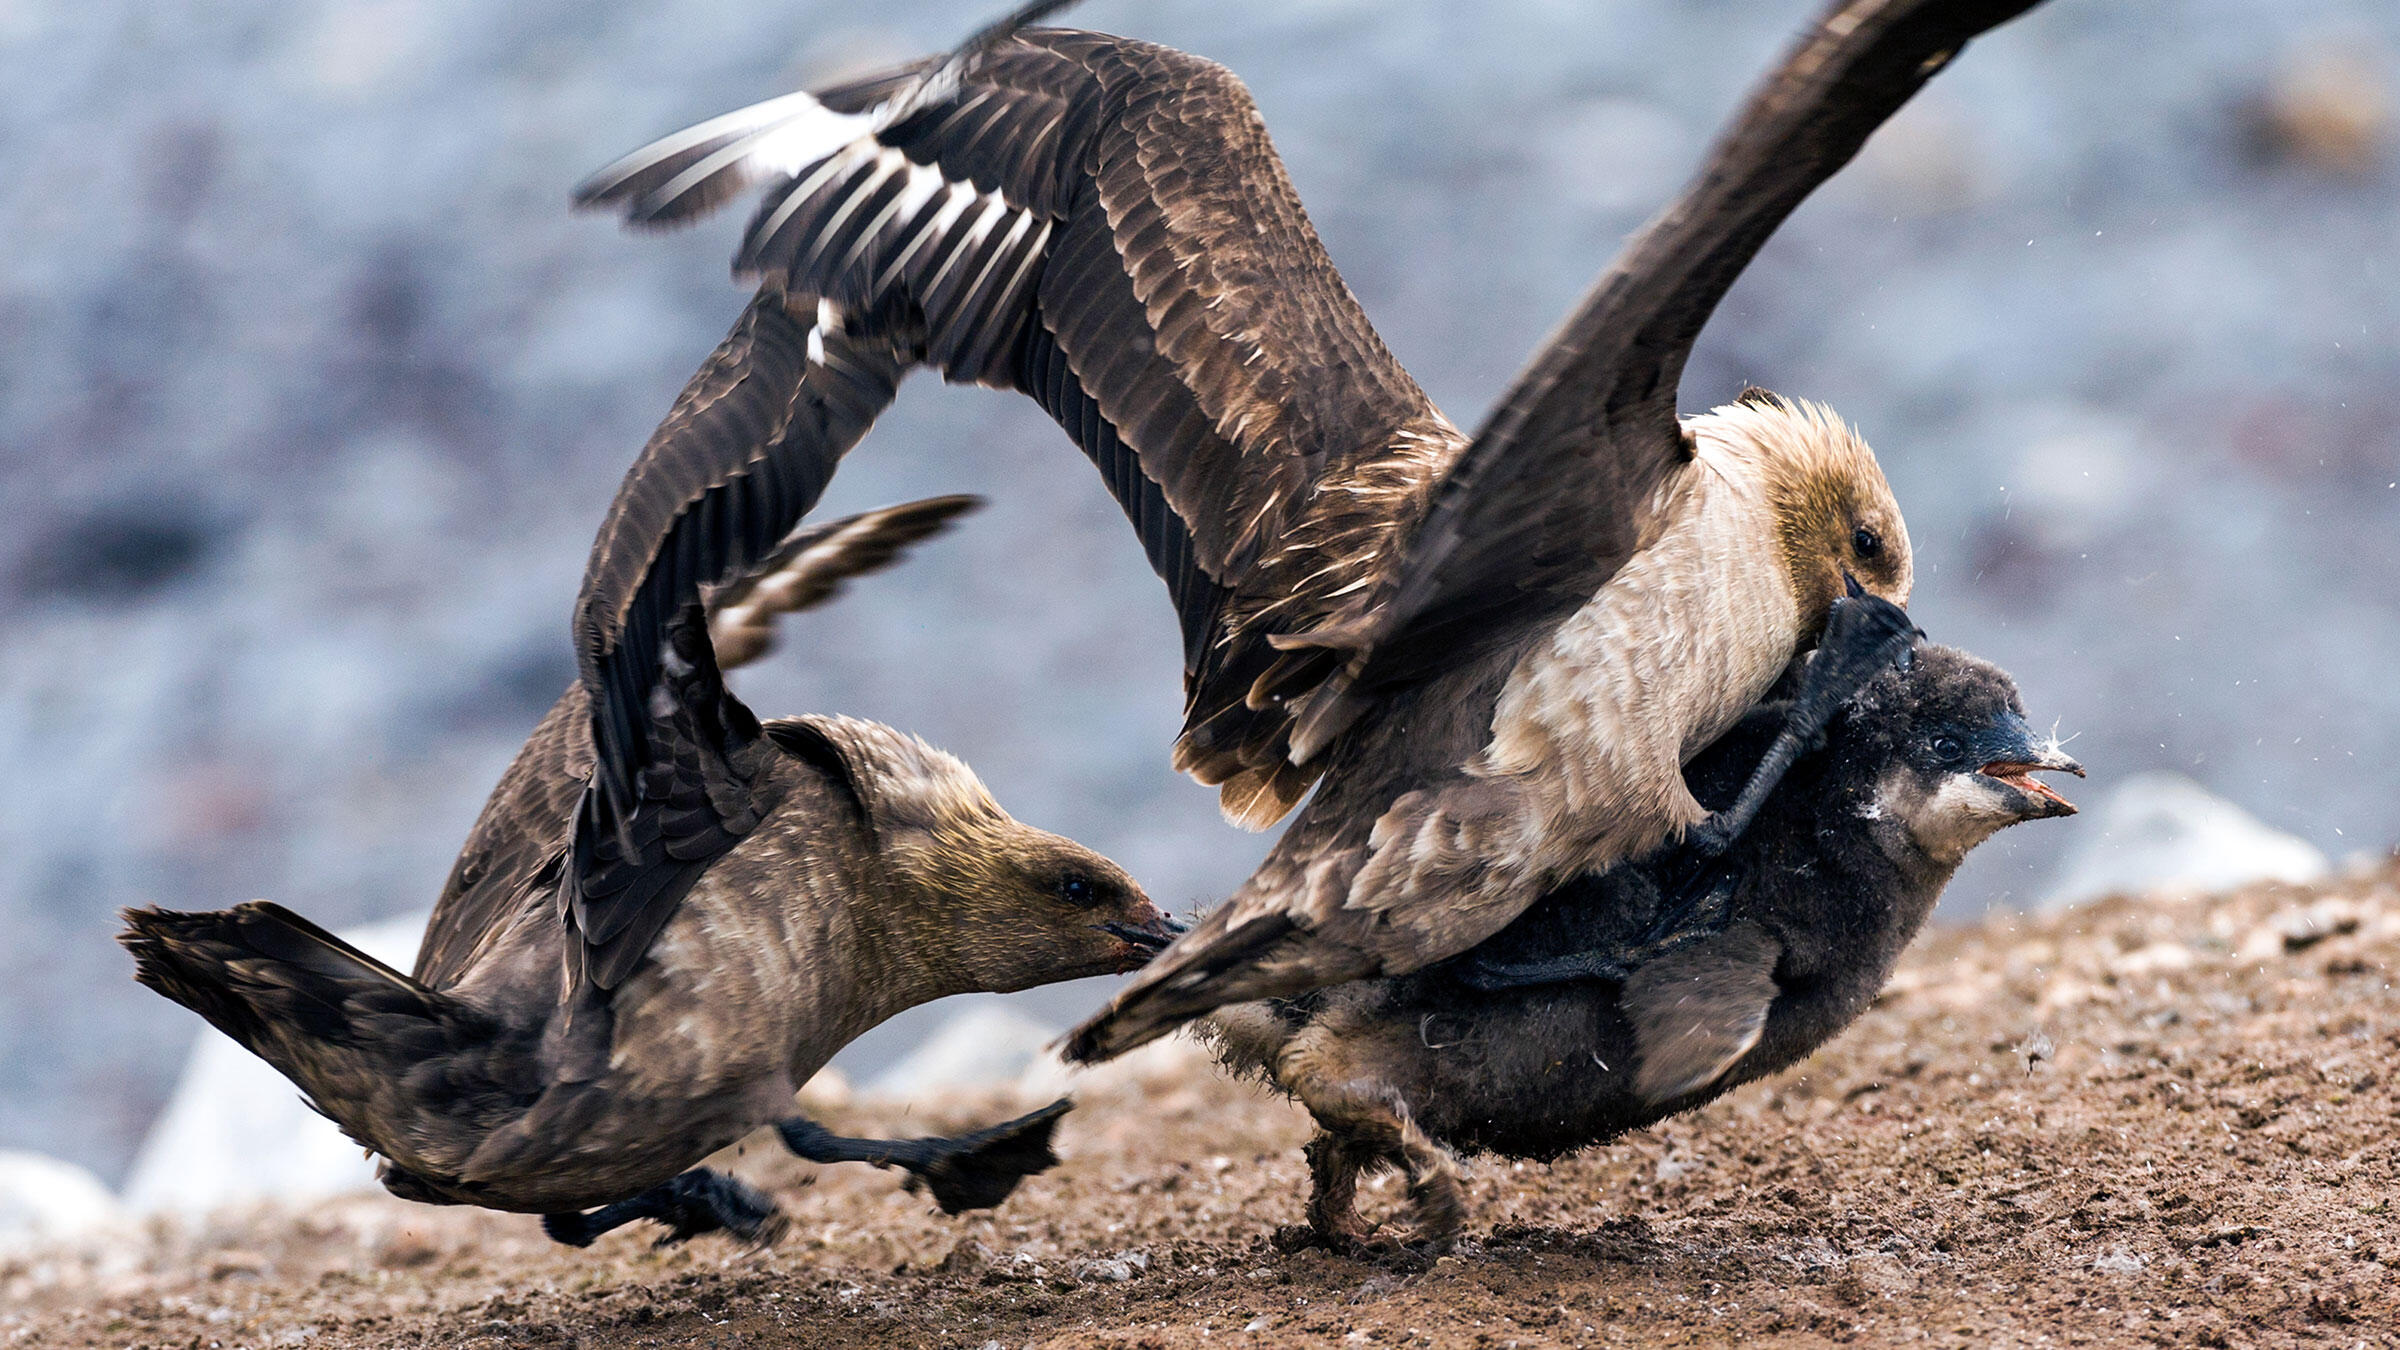 A pair of powerful South Polar Skuas attack an Adelie Penguin chick. Jason Edwards/National Geographic Creative